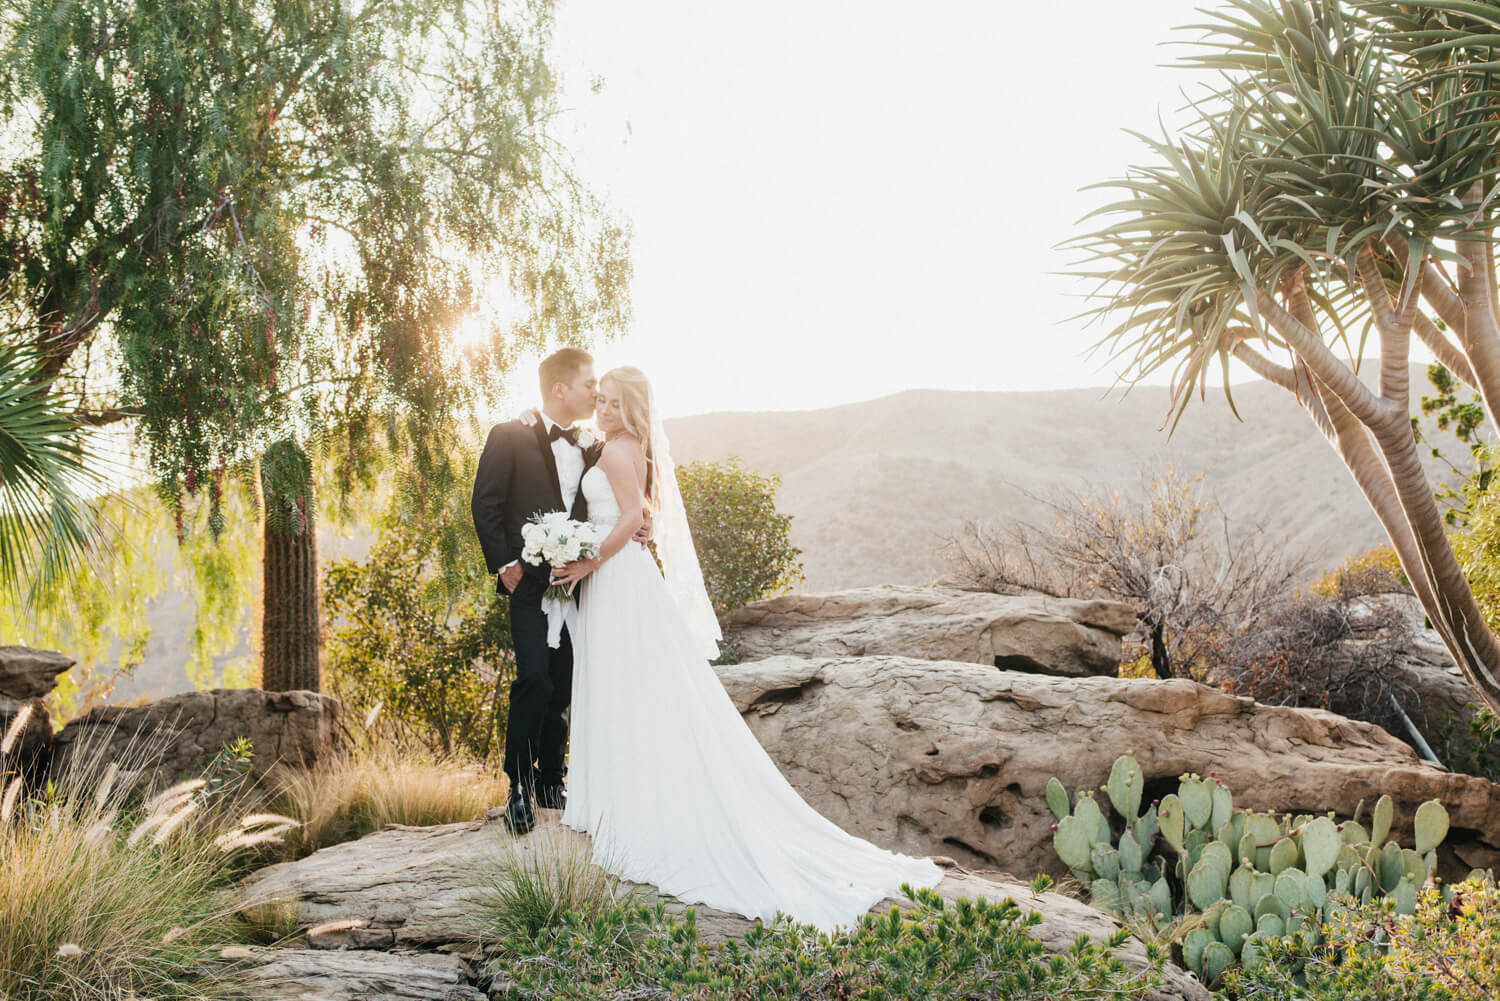 Everything you need to know before choosing Hummingbird Nest Ranch for your wedding!